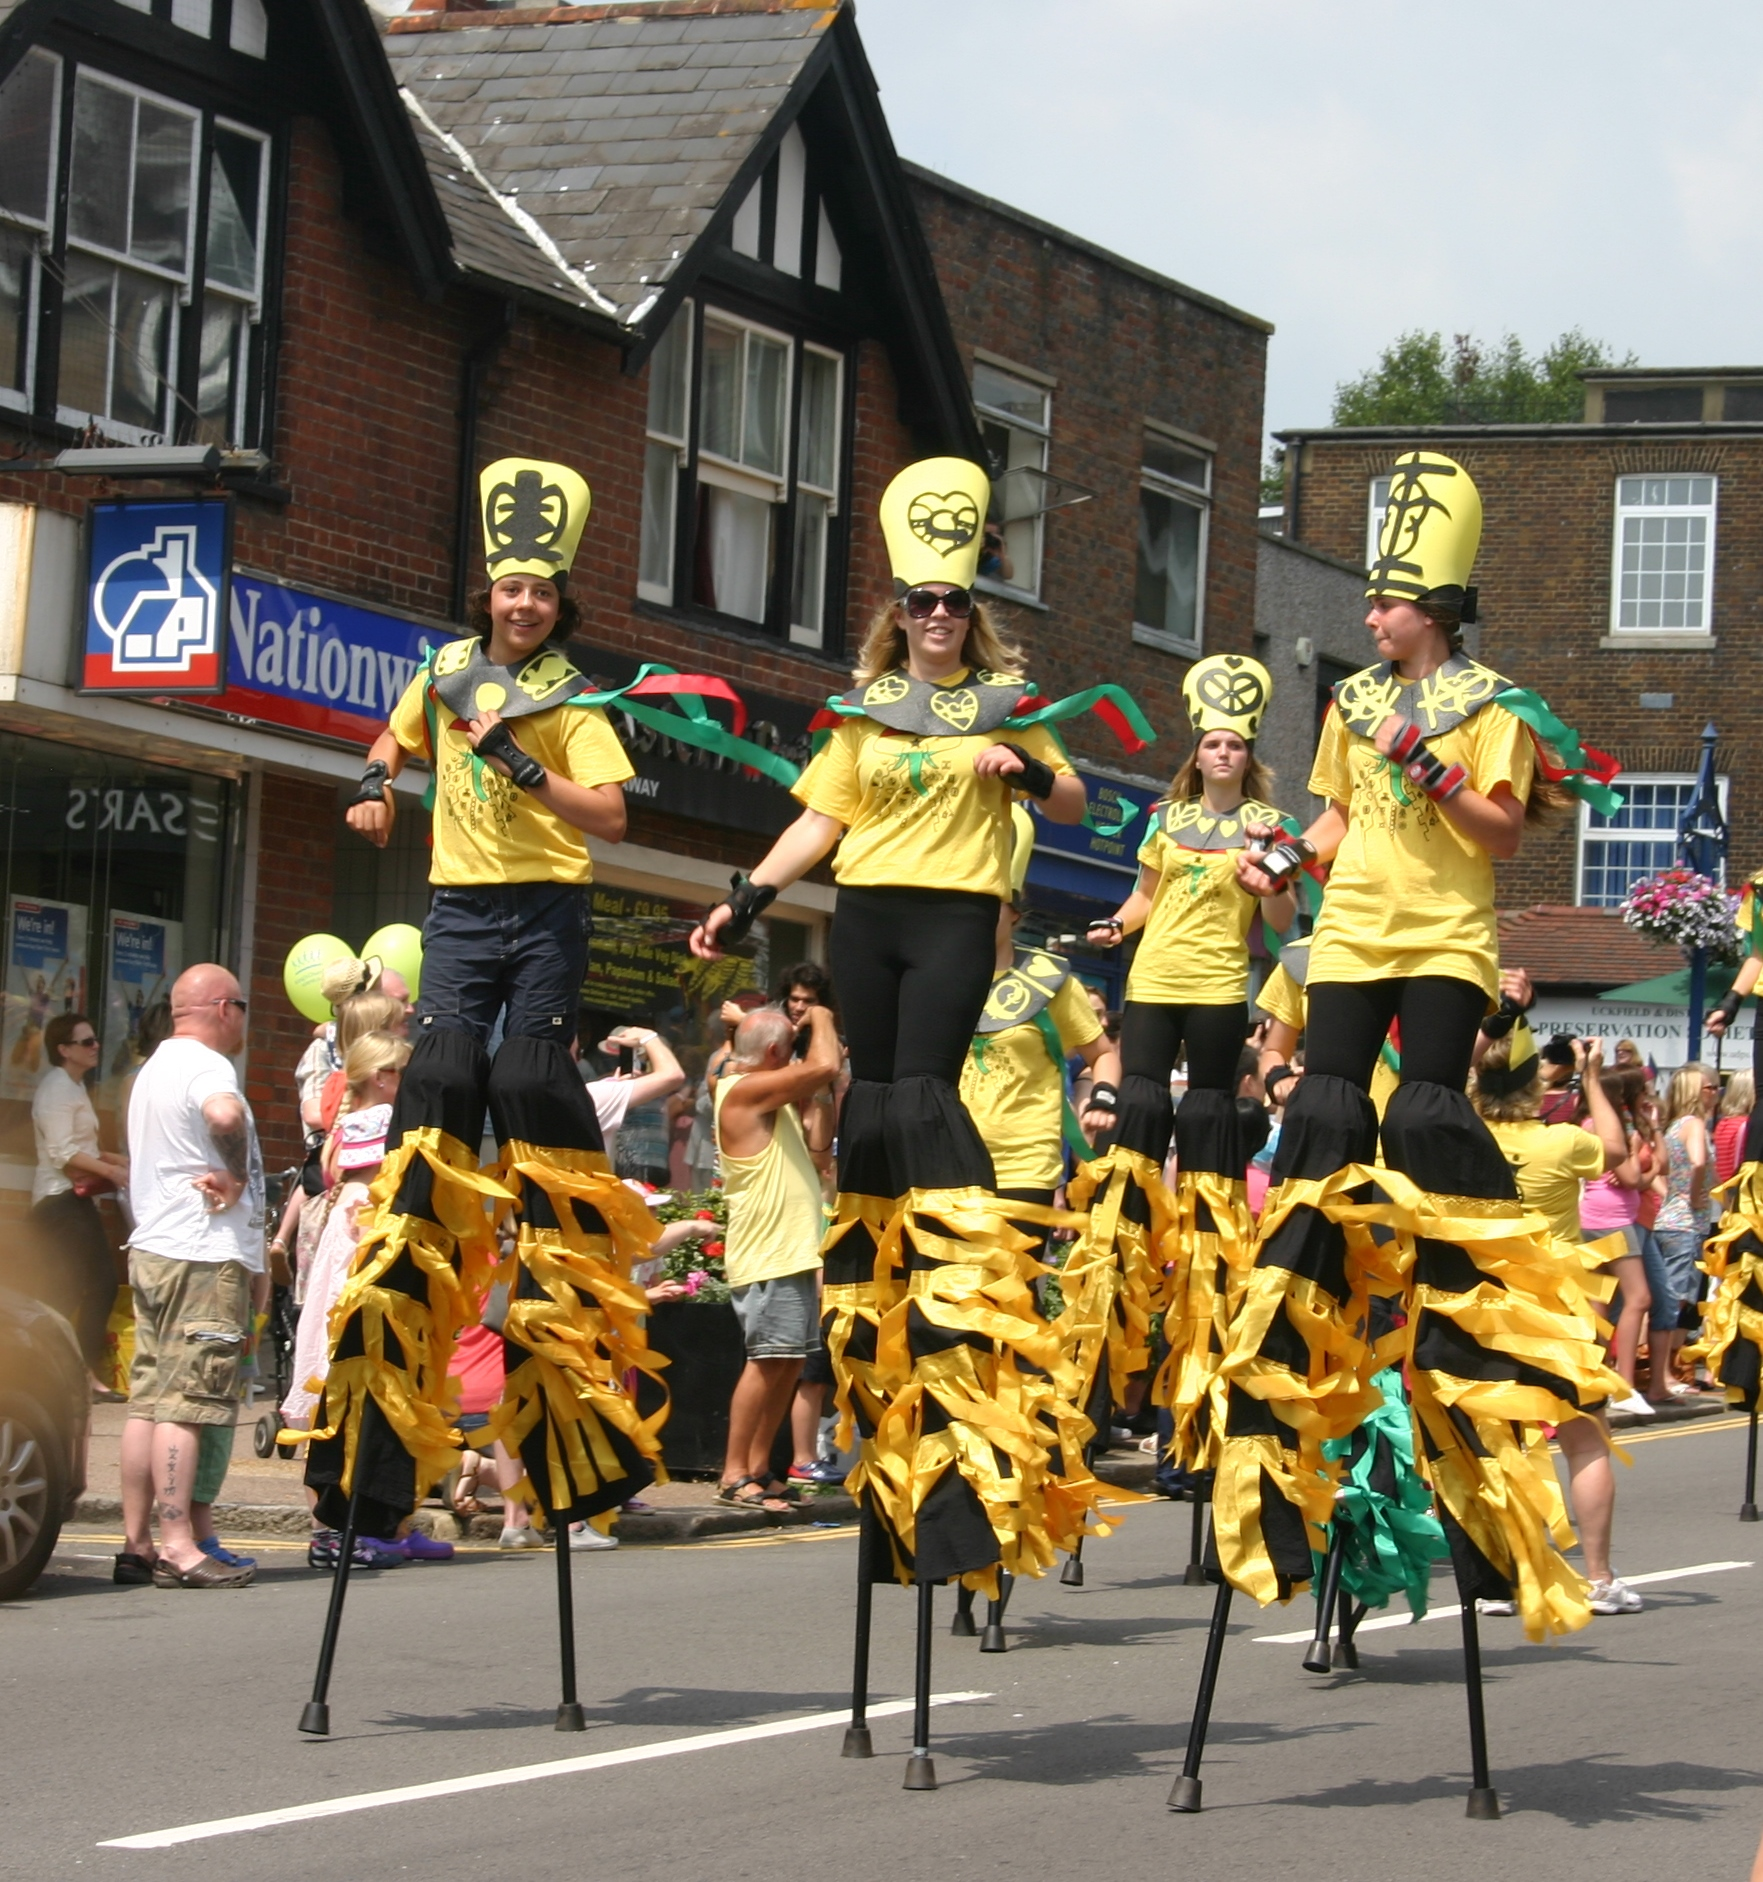 Uckfield Carnival procession with stilt walkers